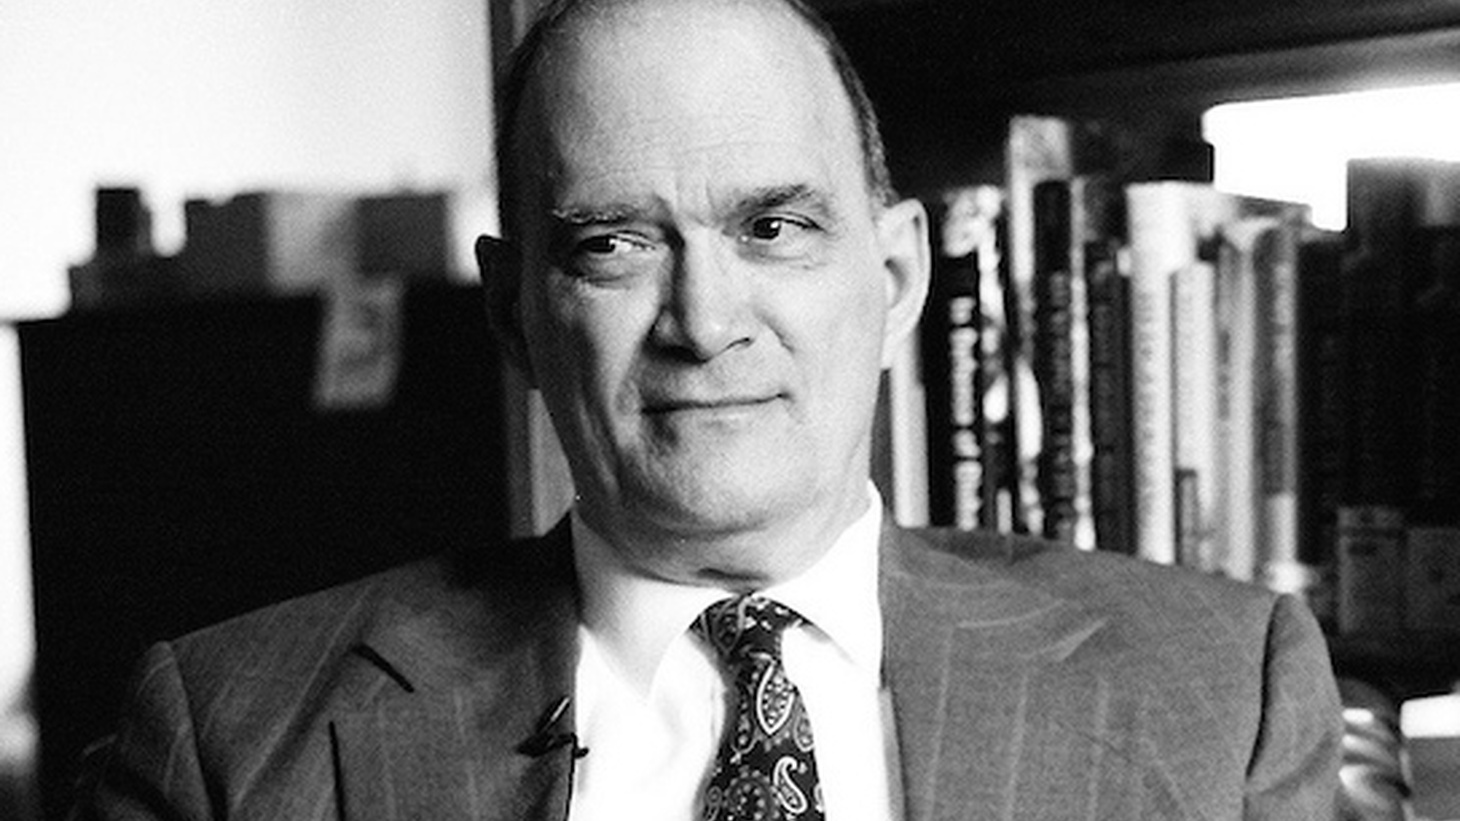 Robert Scheer sits down with former National Security Agency official turned whistle-blower William Binney to discuss the fight between Apple and the US government over access to Americans' cell phone data and why he believes there can be too much intelligence.